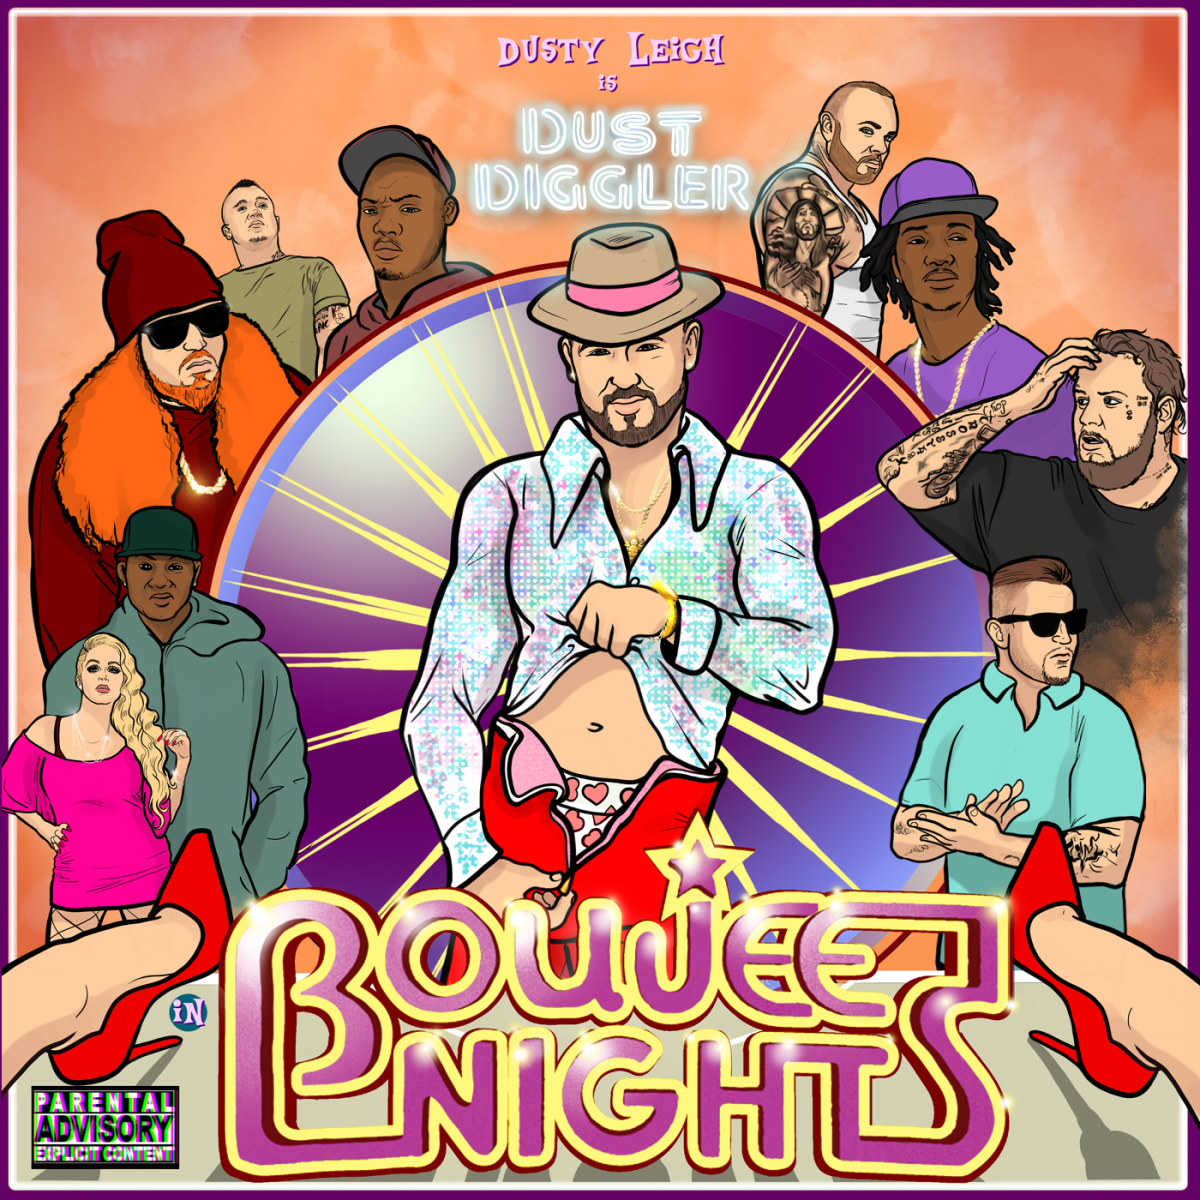 Dusty Leigh (@dustyonu) - Boujee Nights